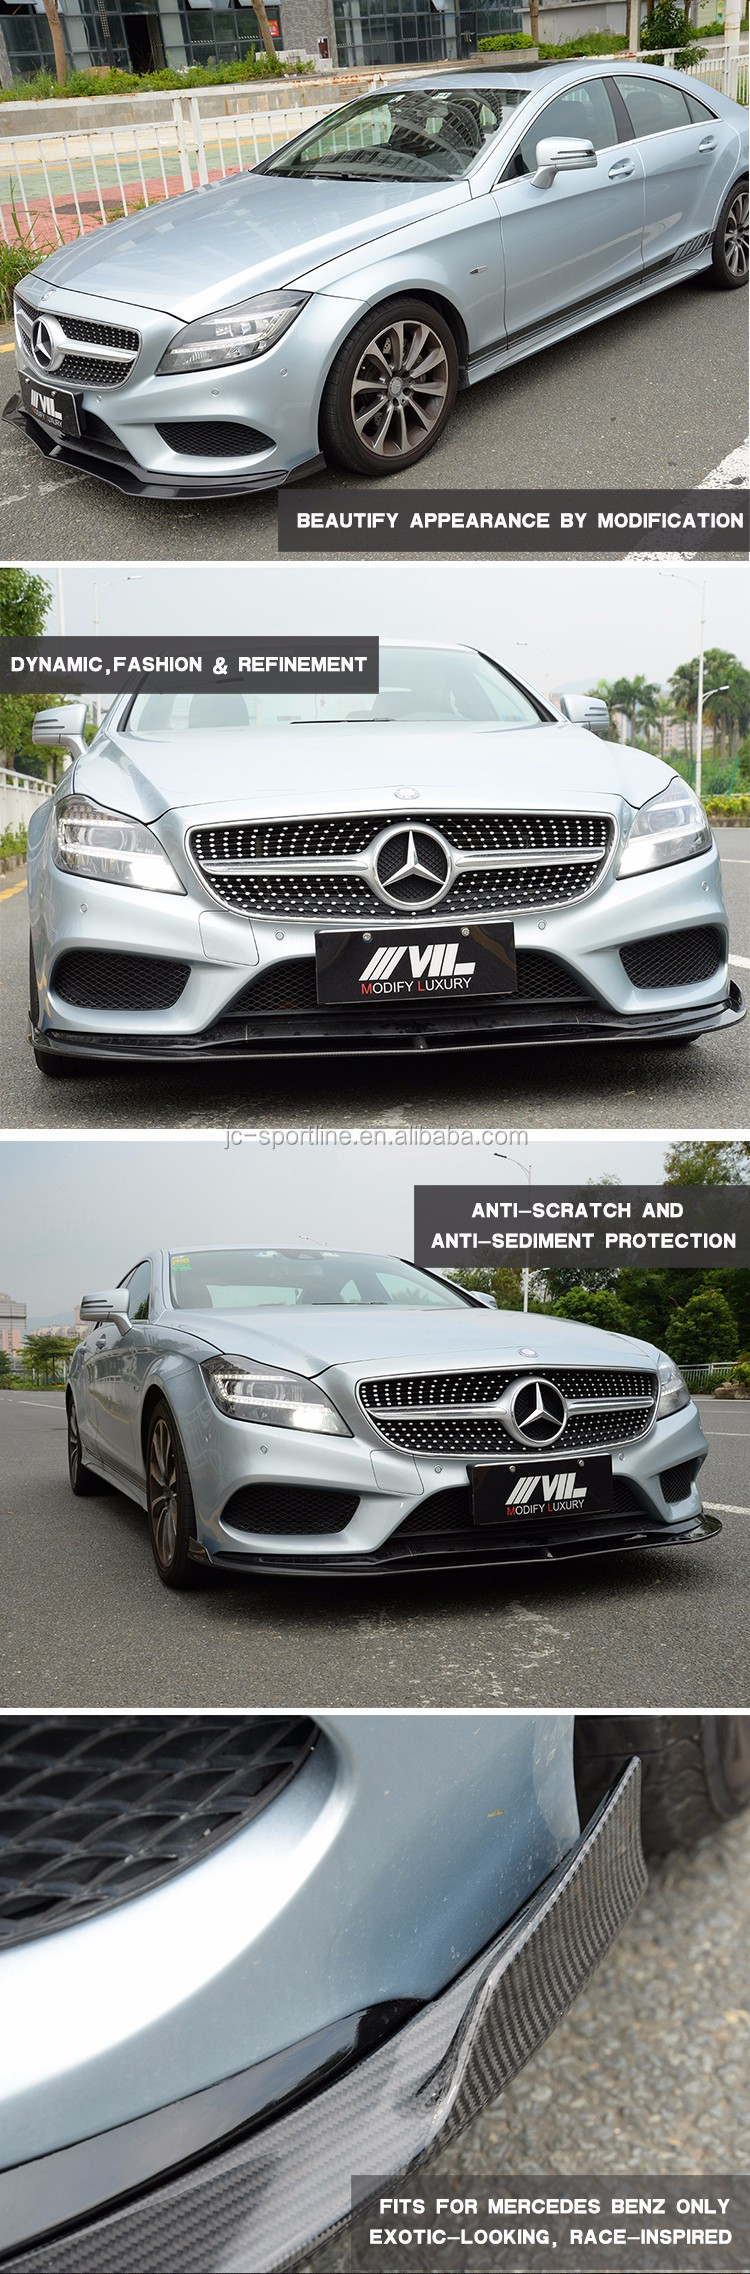 Customized Carbon Car Front Lip for Mercedes W218 4Matic Sedan 4-Door